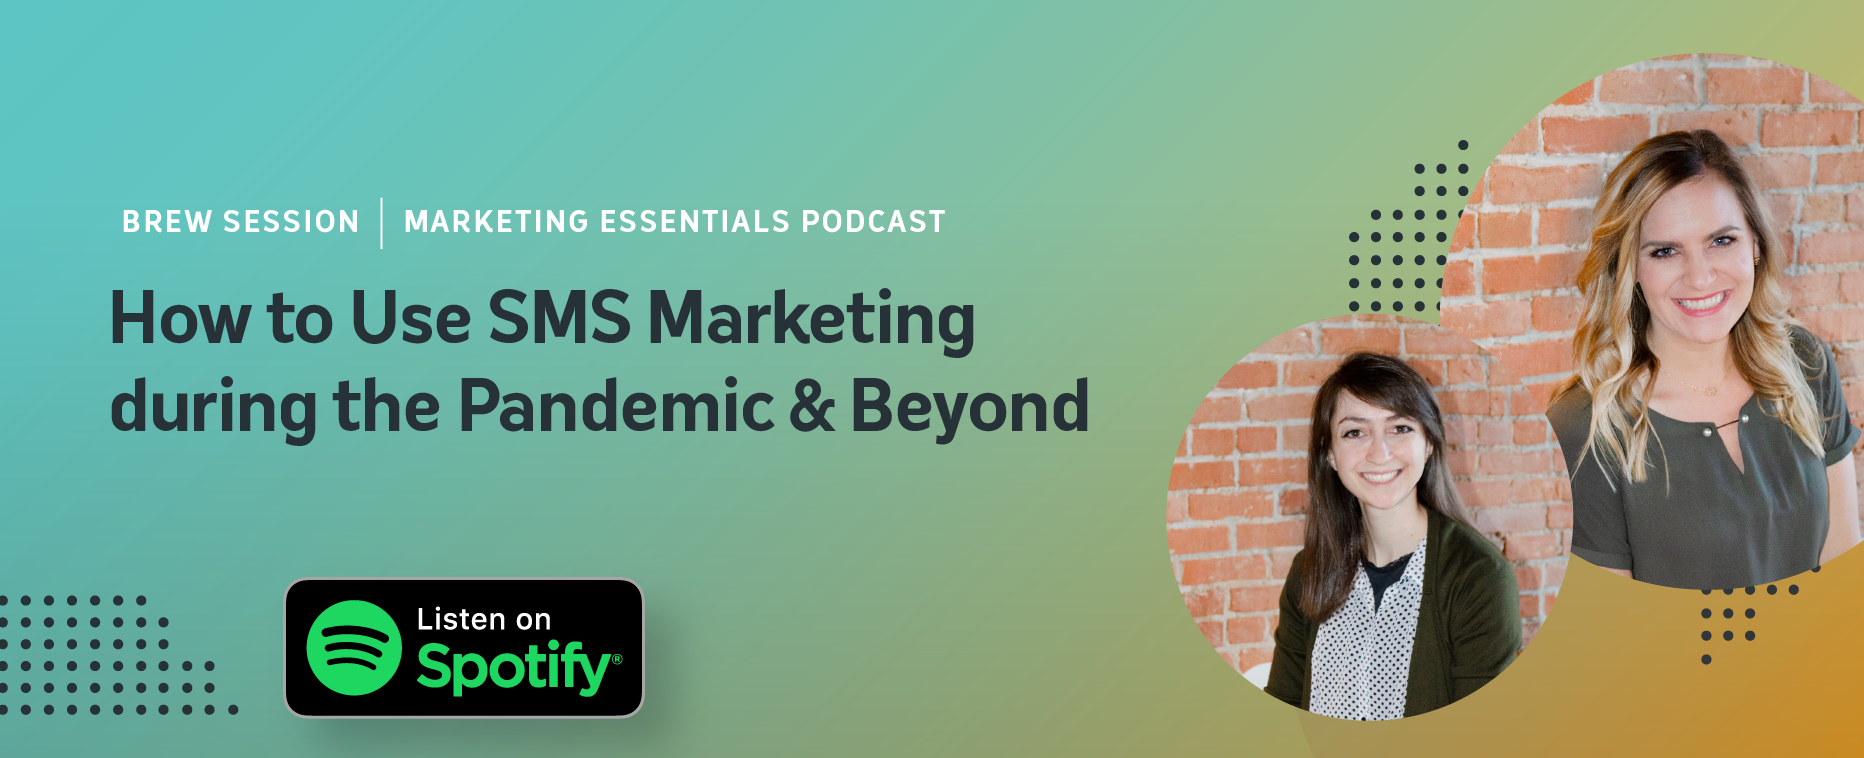 Sms marketing listen on spotify